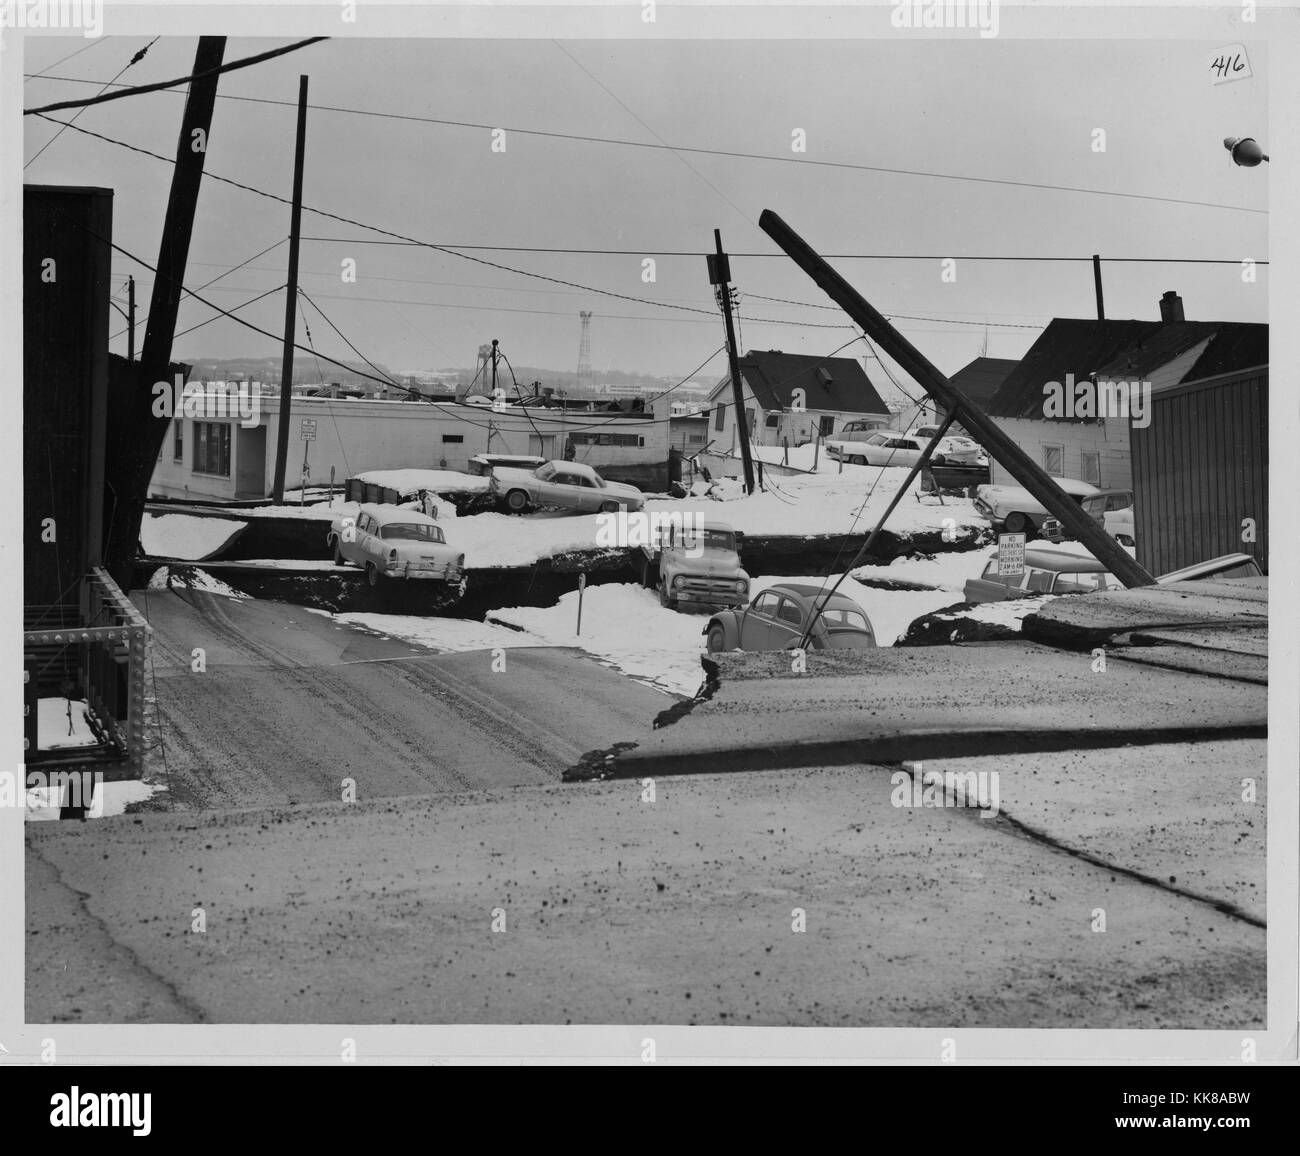 A photograph showing the destruction that occurred in Anchorage caused by the 1964 Alaska earthquake, major ground - Stock Image